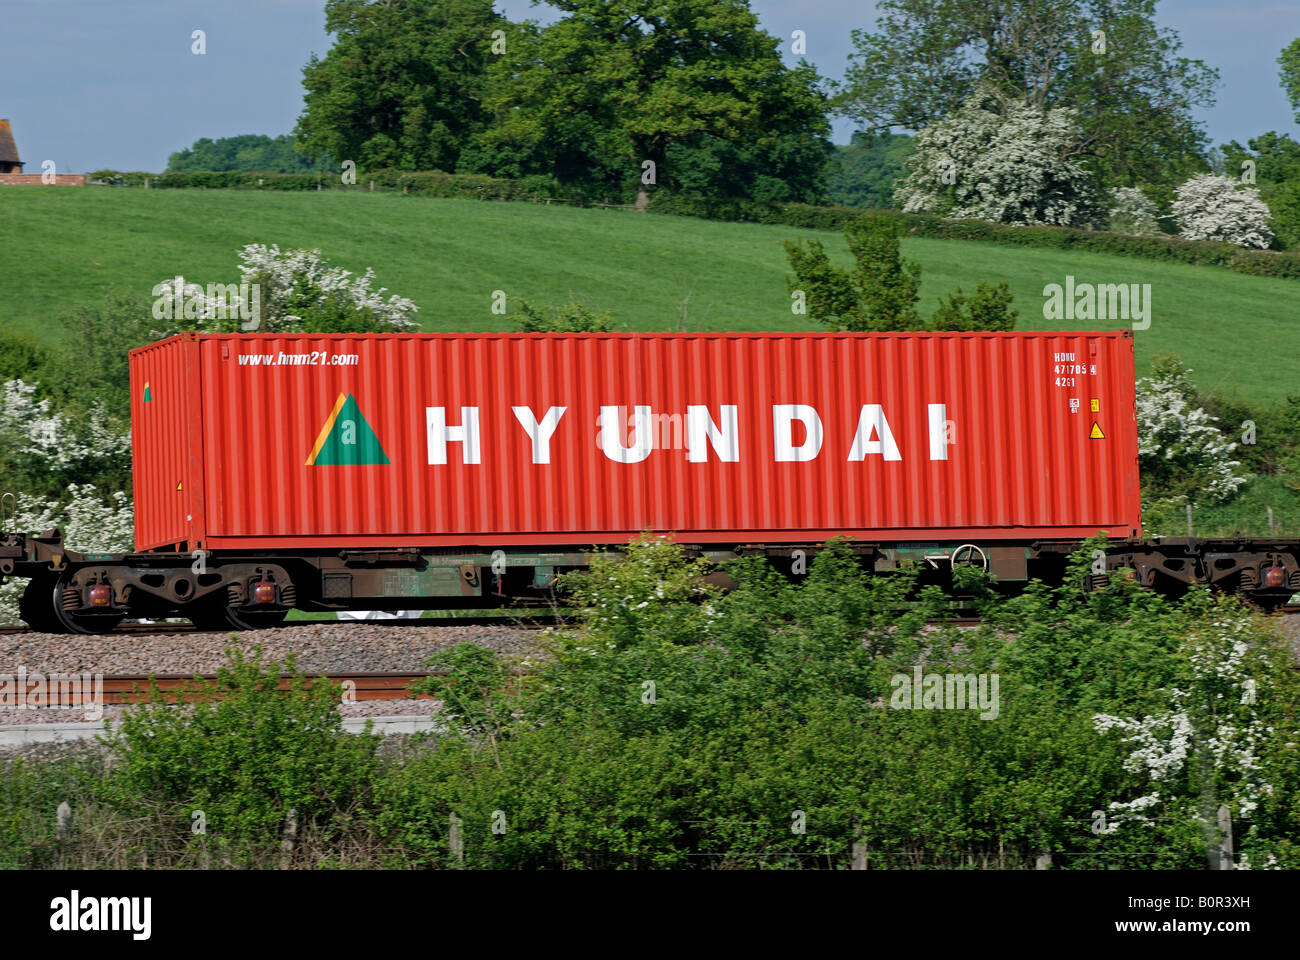 Hyundai Shipping Container On Train Uk Stock Photo